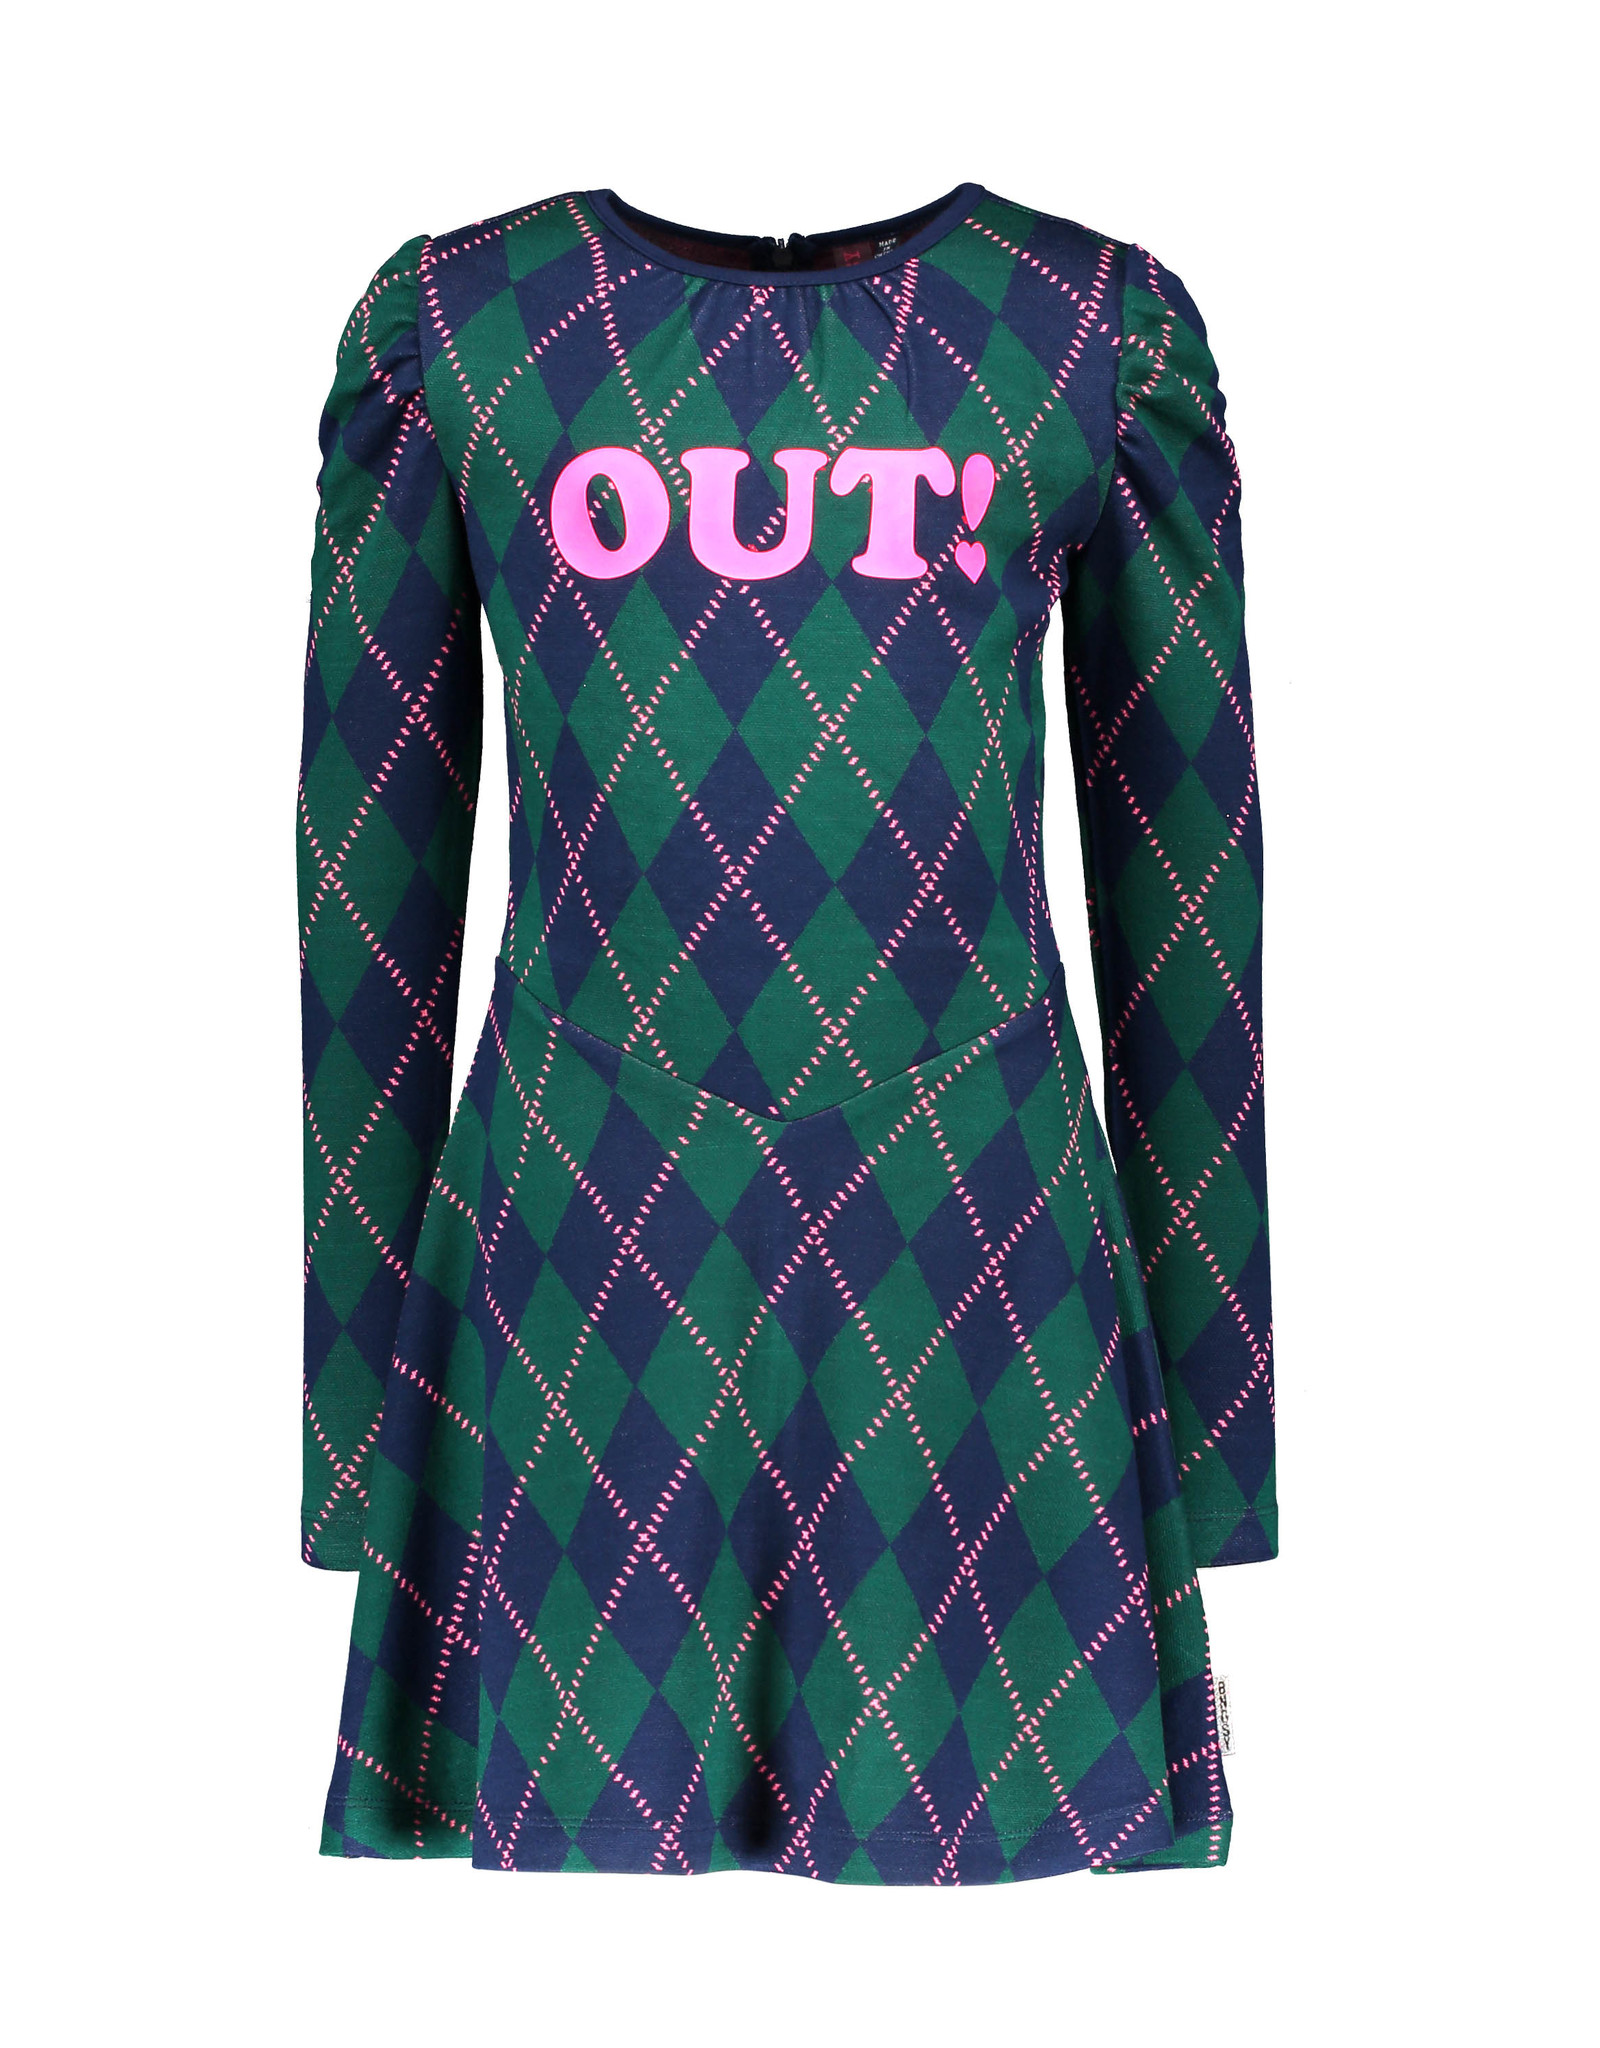 B-Nosy Girls intarsia check dress with puffed sleeves, Out check